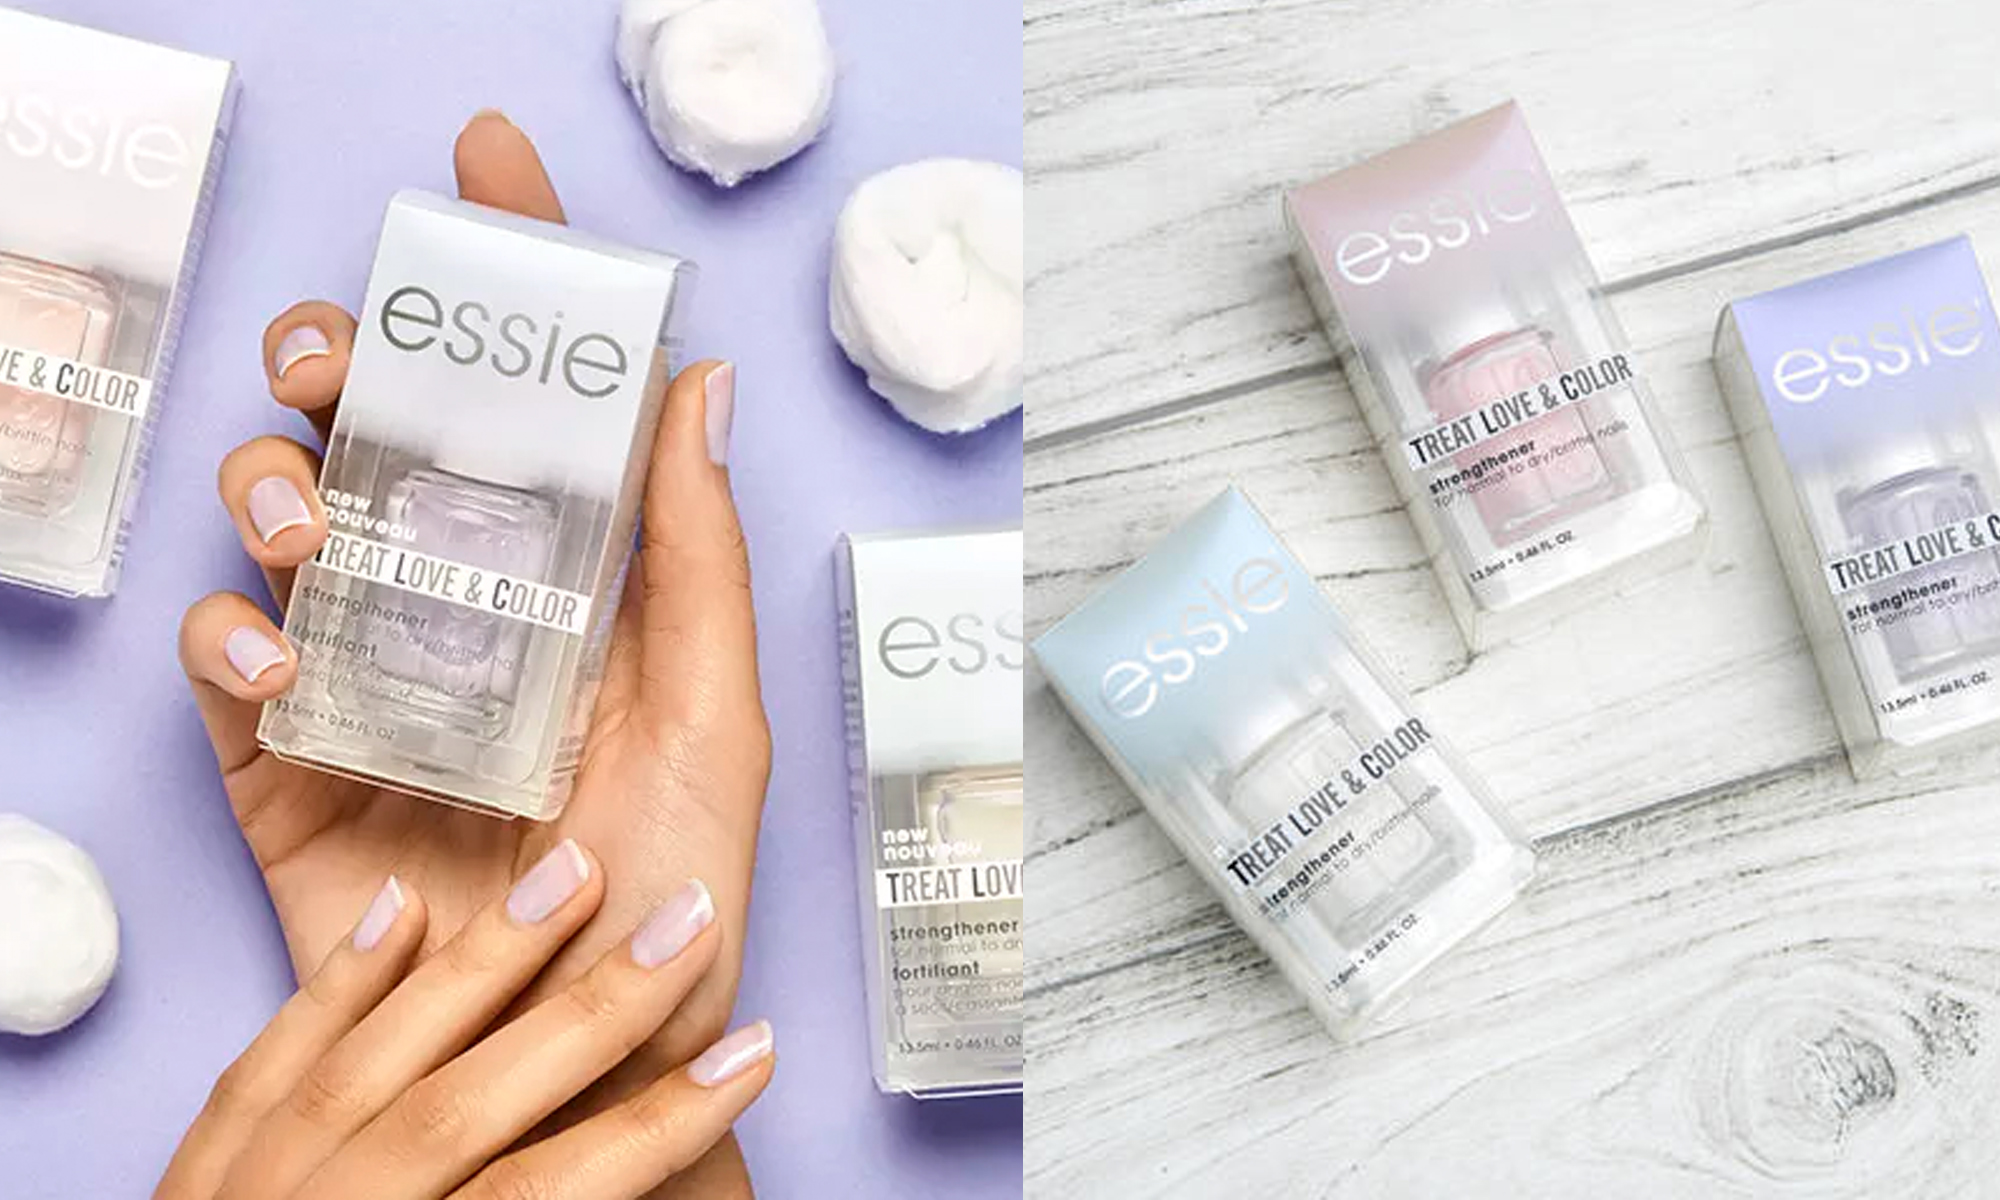 Images via Target and Essie